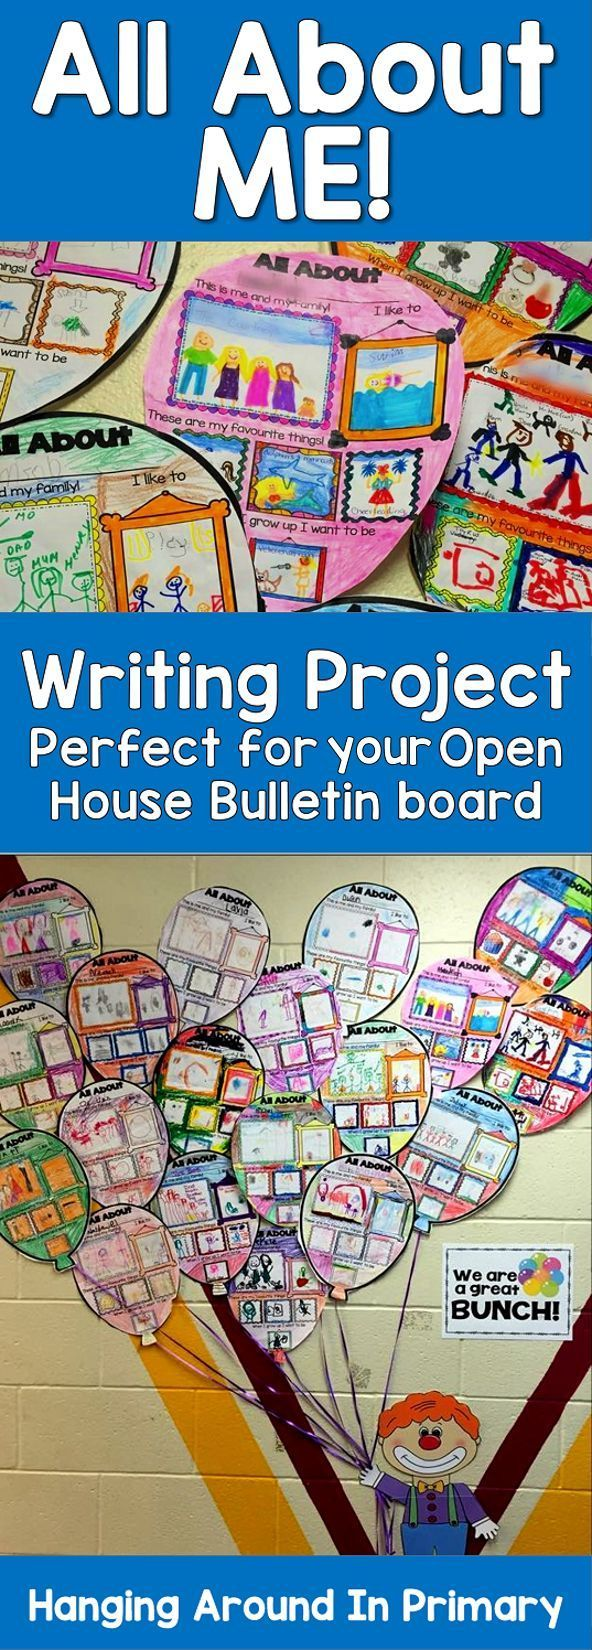 Are you looking for an activity to get to know your students when they come back to school? Would you like it to double as a bulletin board for Open House? This All About Me resource covers you for both!